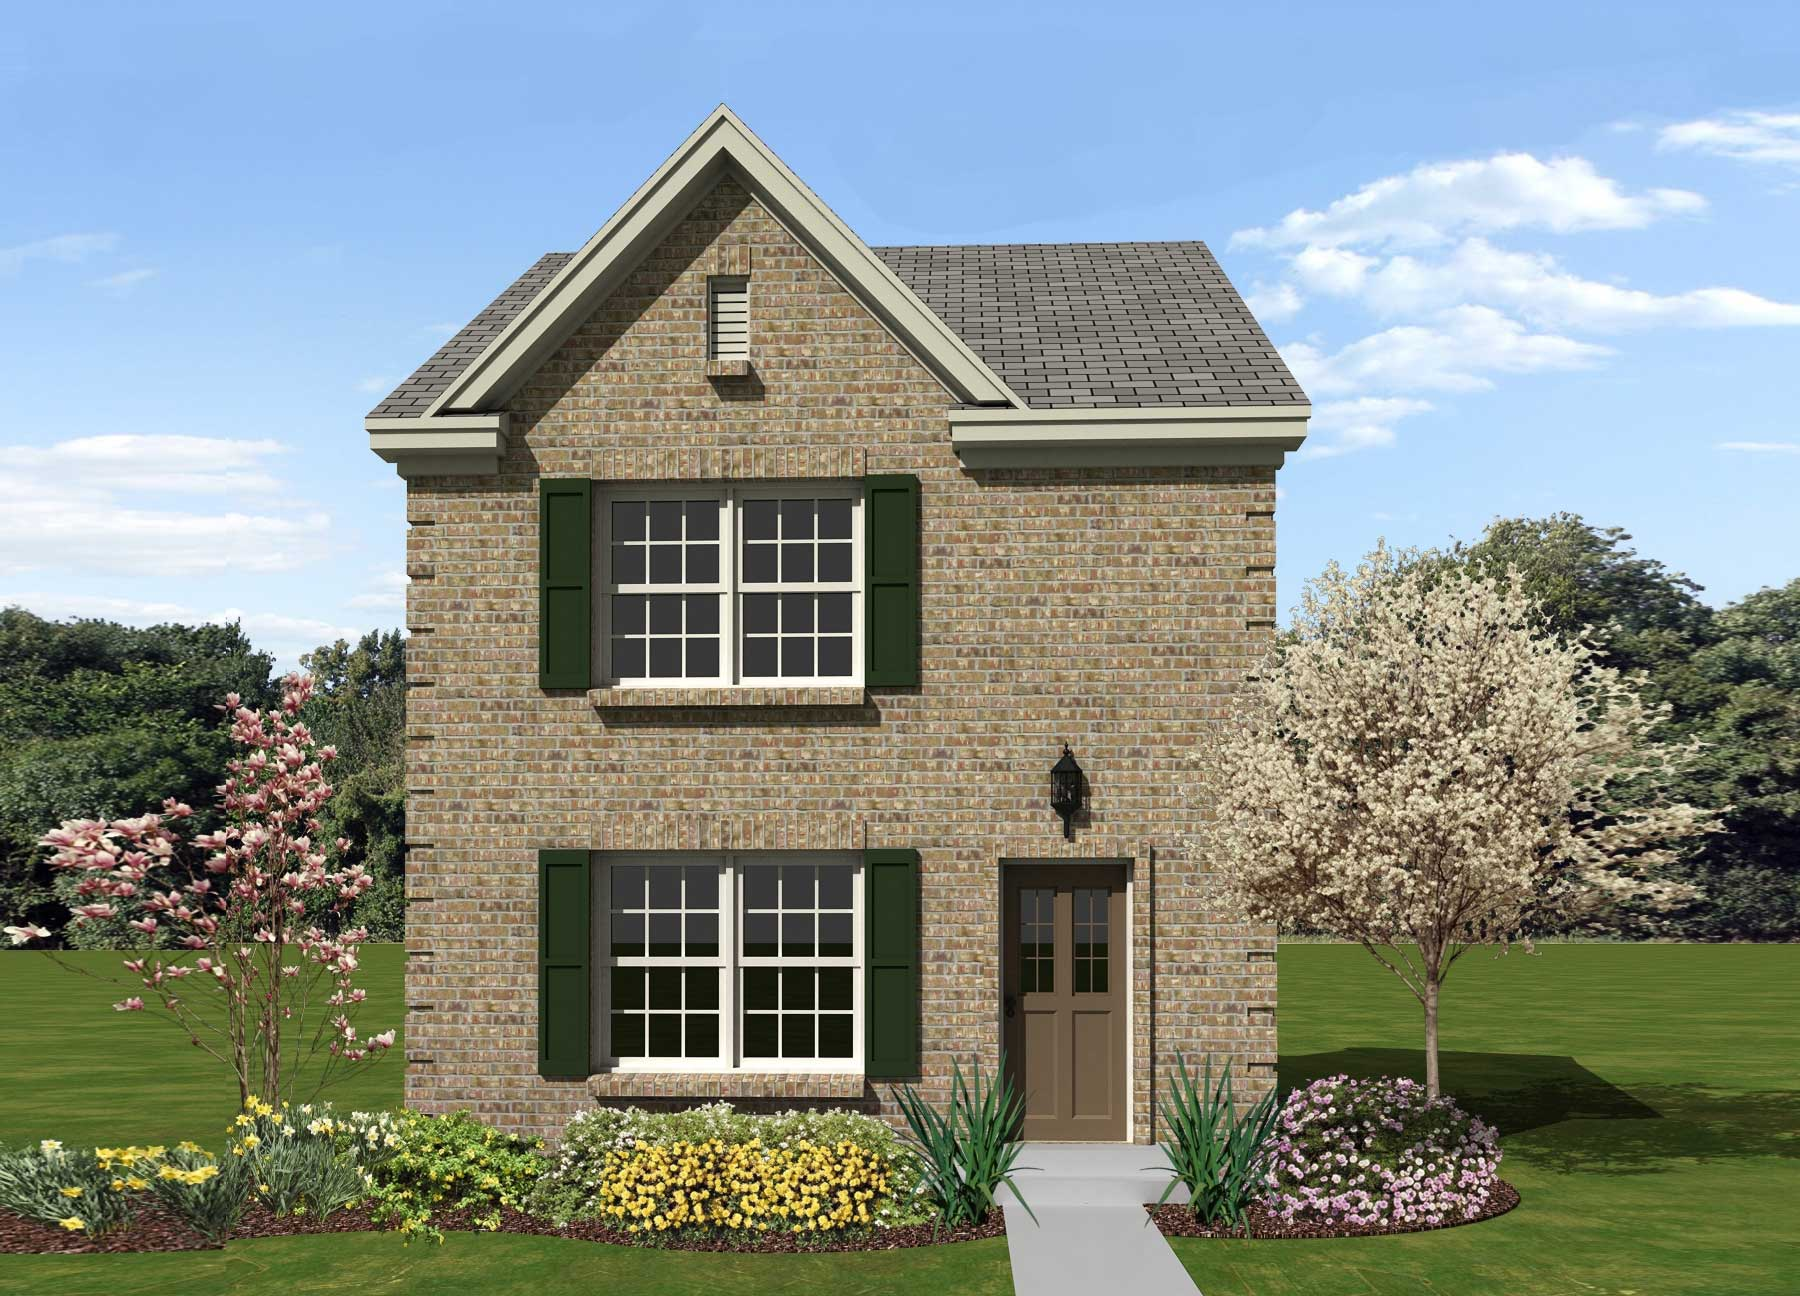 Georgian home plan 2 bedrms 1 5 baths 1107 sq ft for Georgia house plans